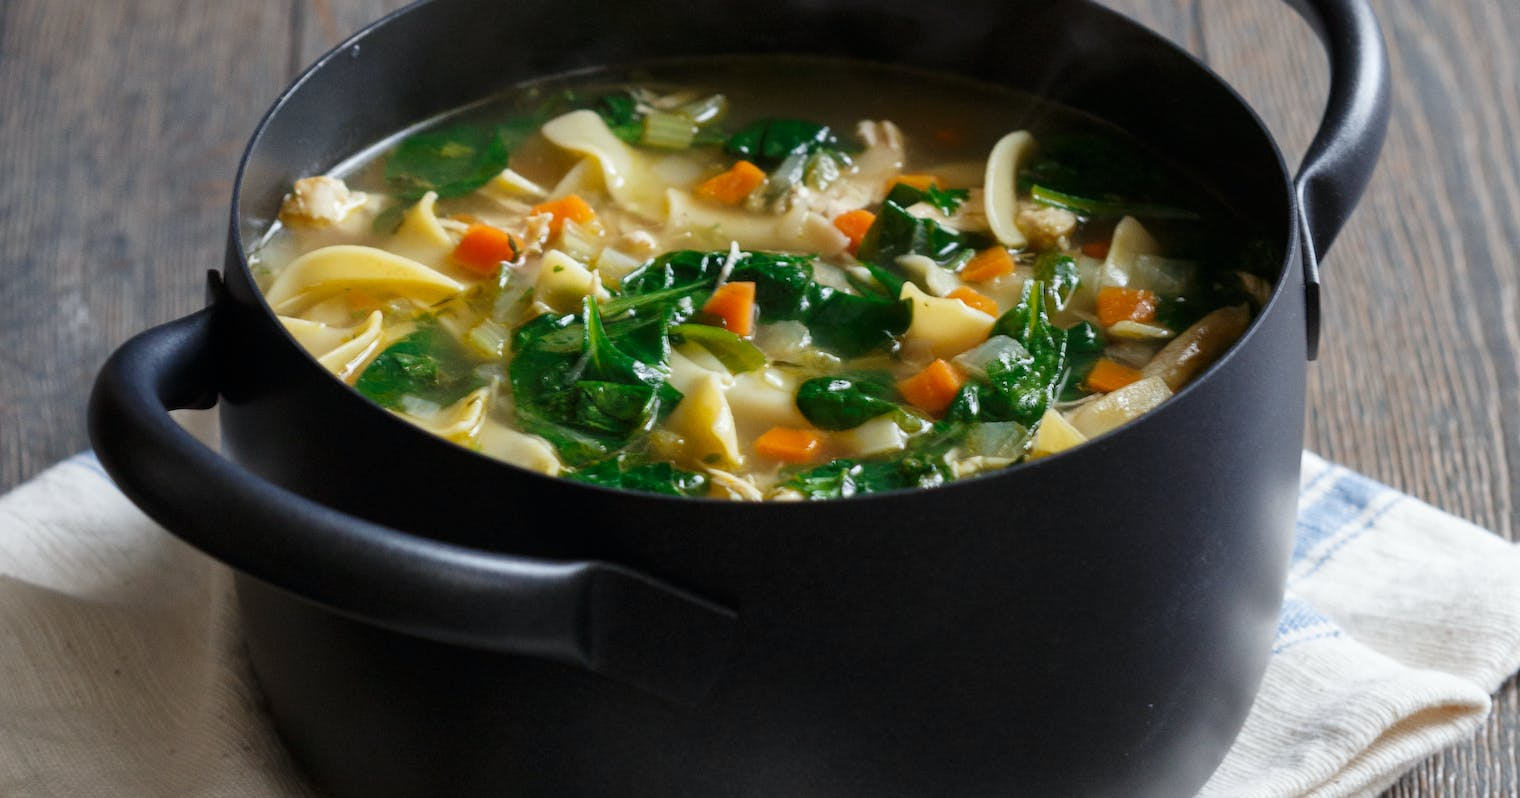 Best Homemade Chicken Noodle Soup With Spinach Recipe The Yellow Table